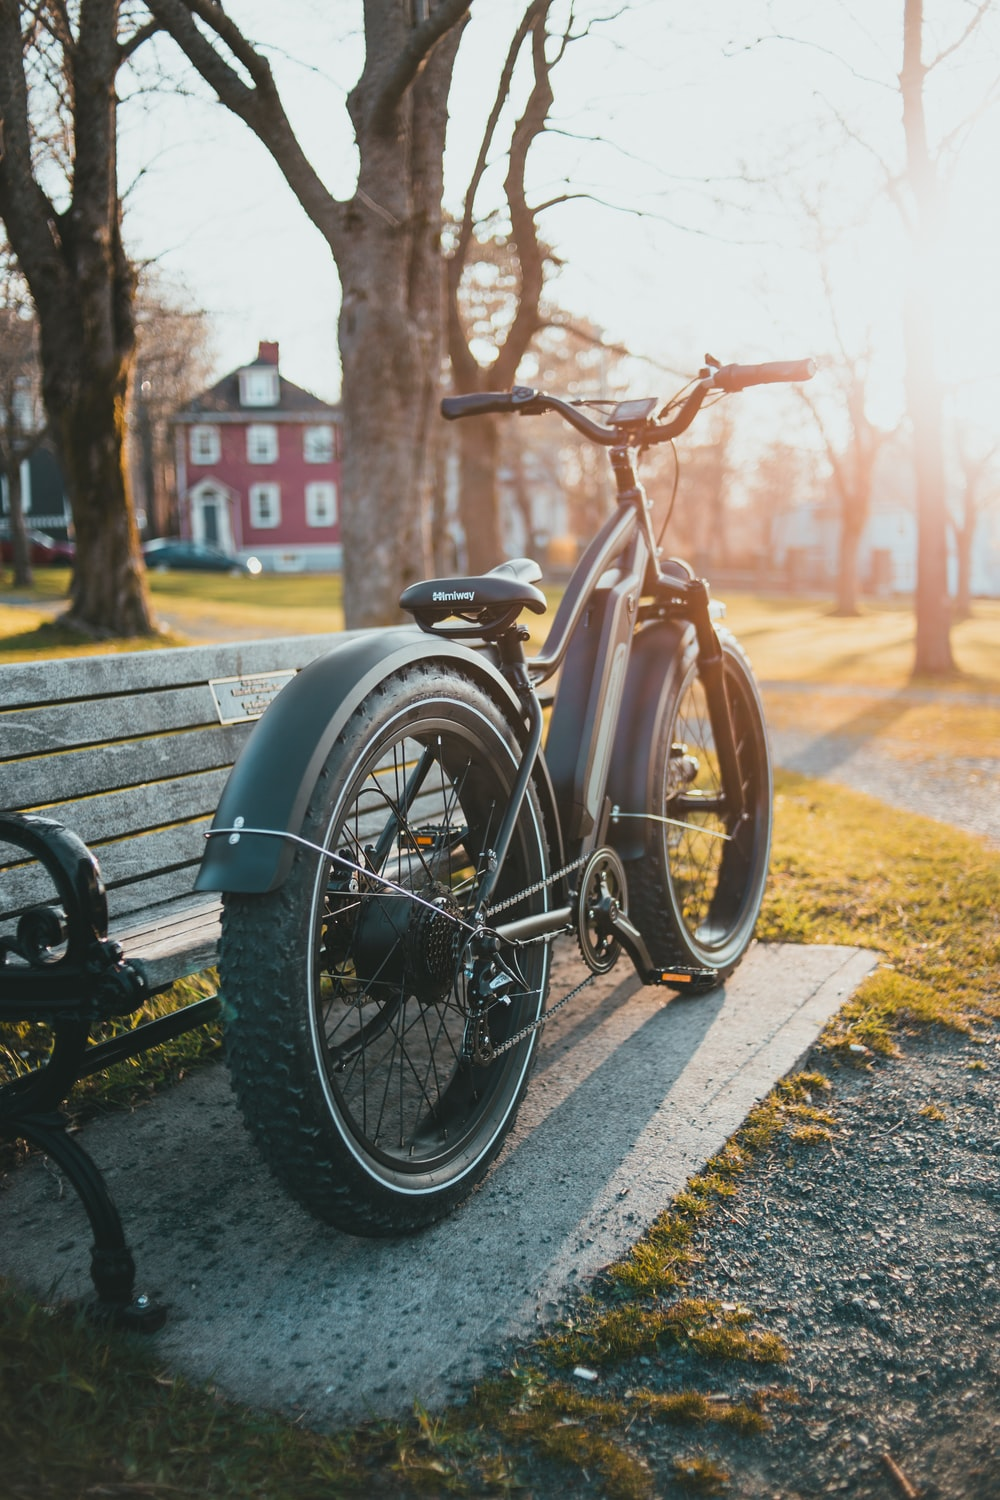 black bicycle parked beside brown wooden bench during daytime